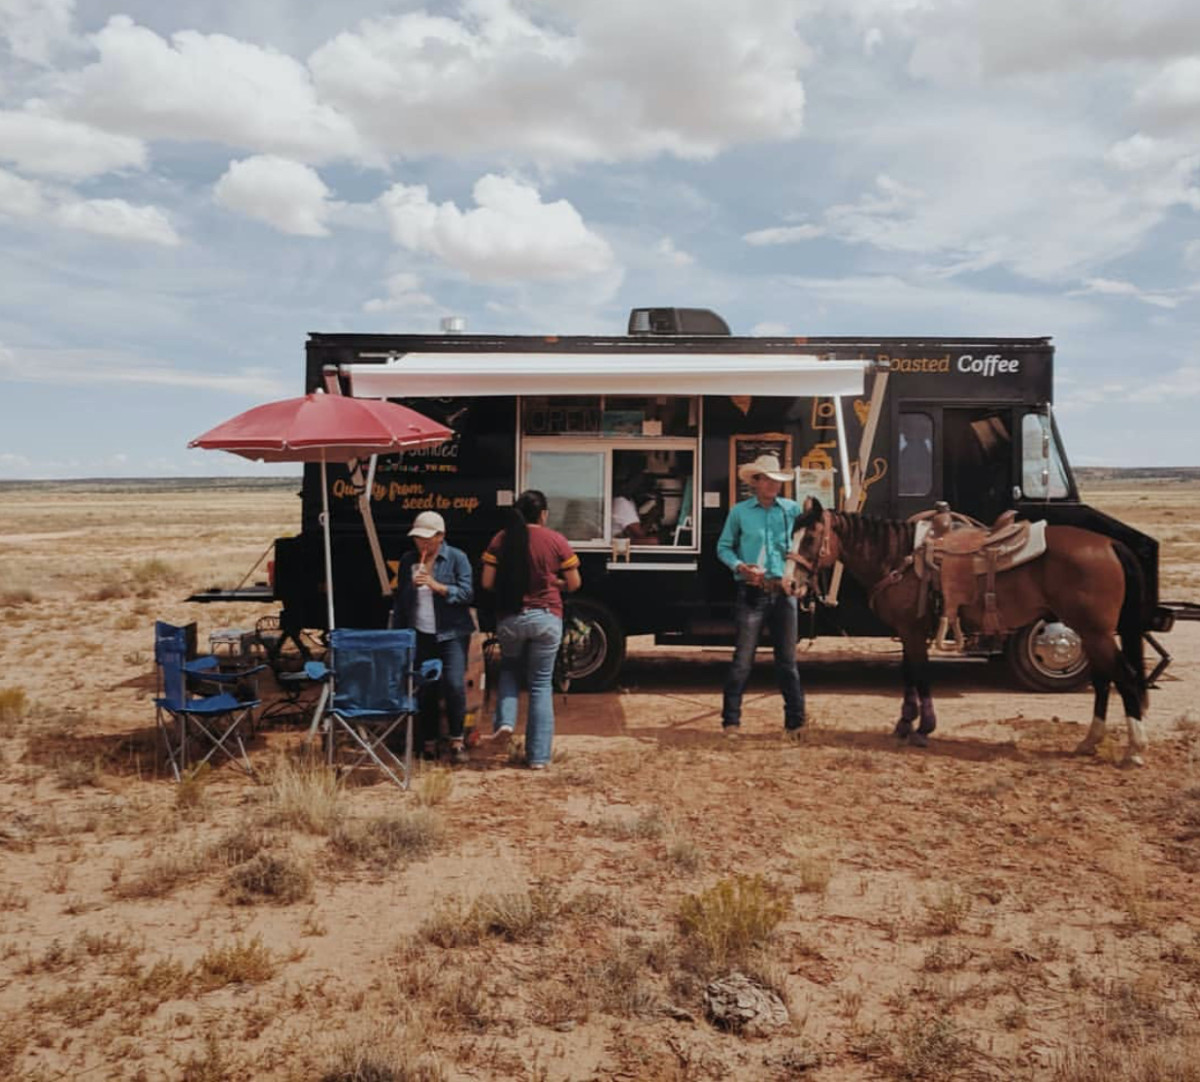 Navajo coffee truck. (Photo courtesy of Stay Grounded)